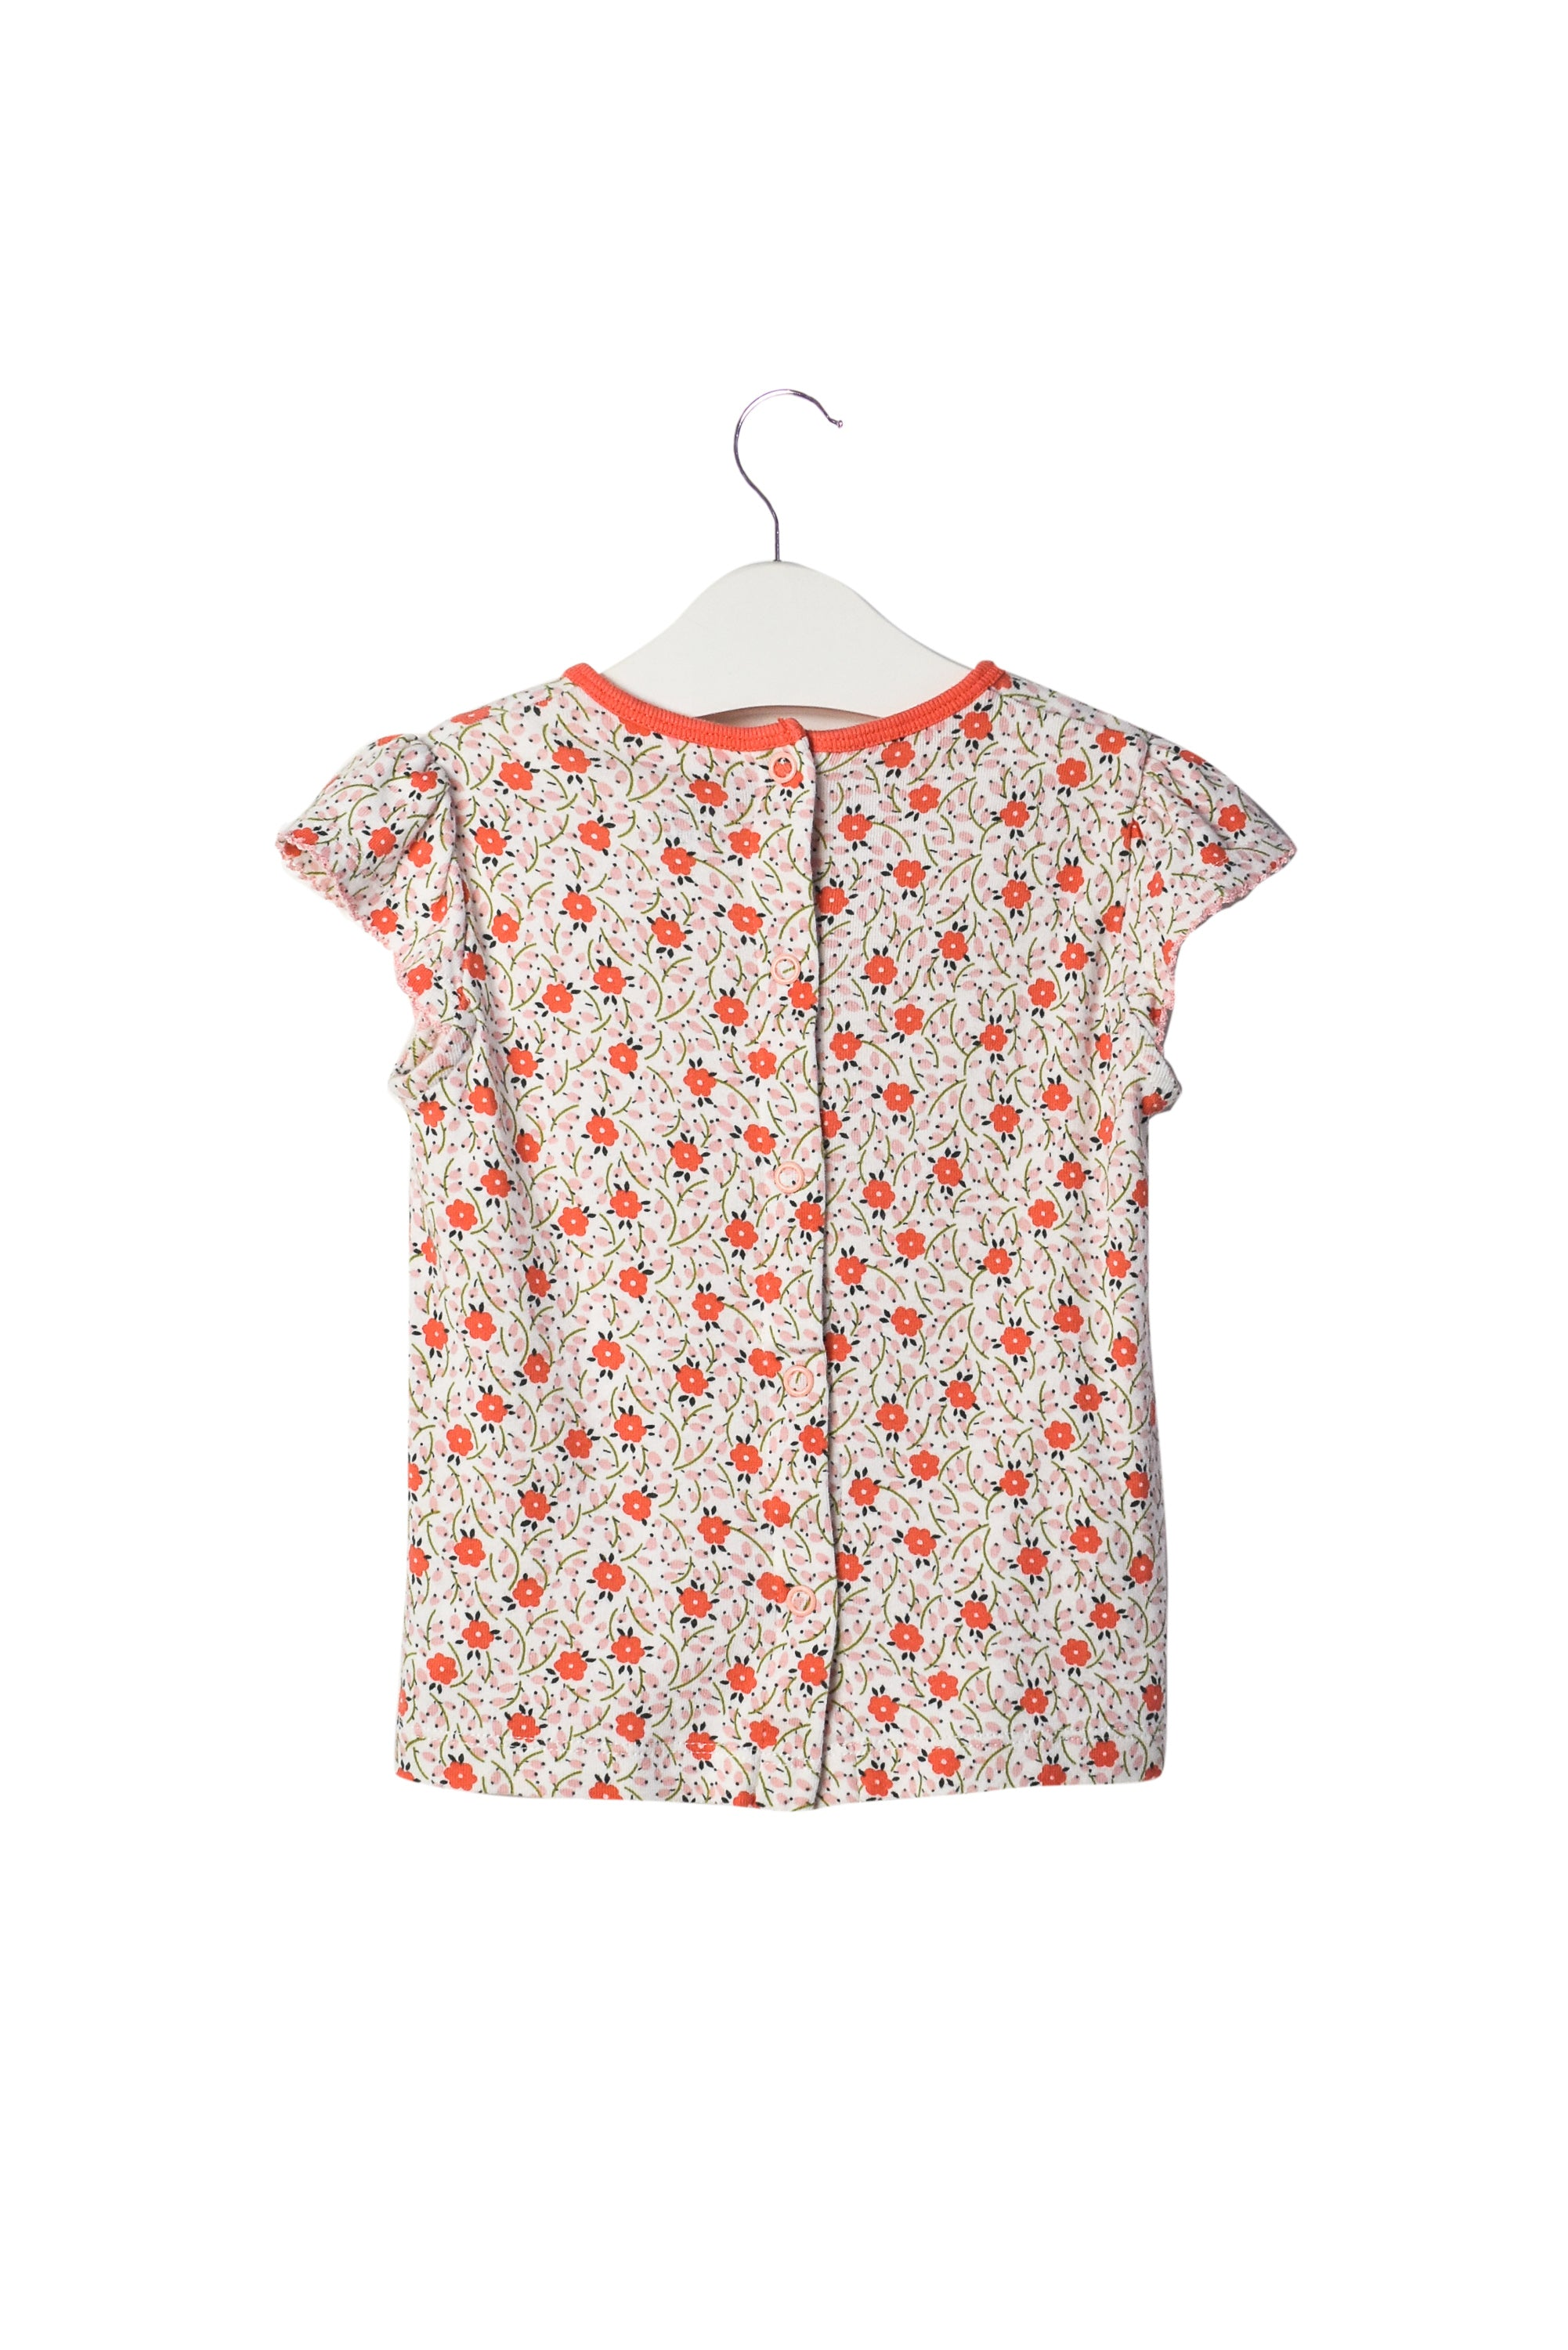 10006973 Boden Baby~Tops 12-18M at Retykle